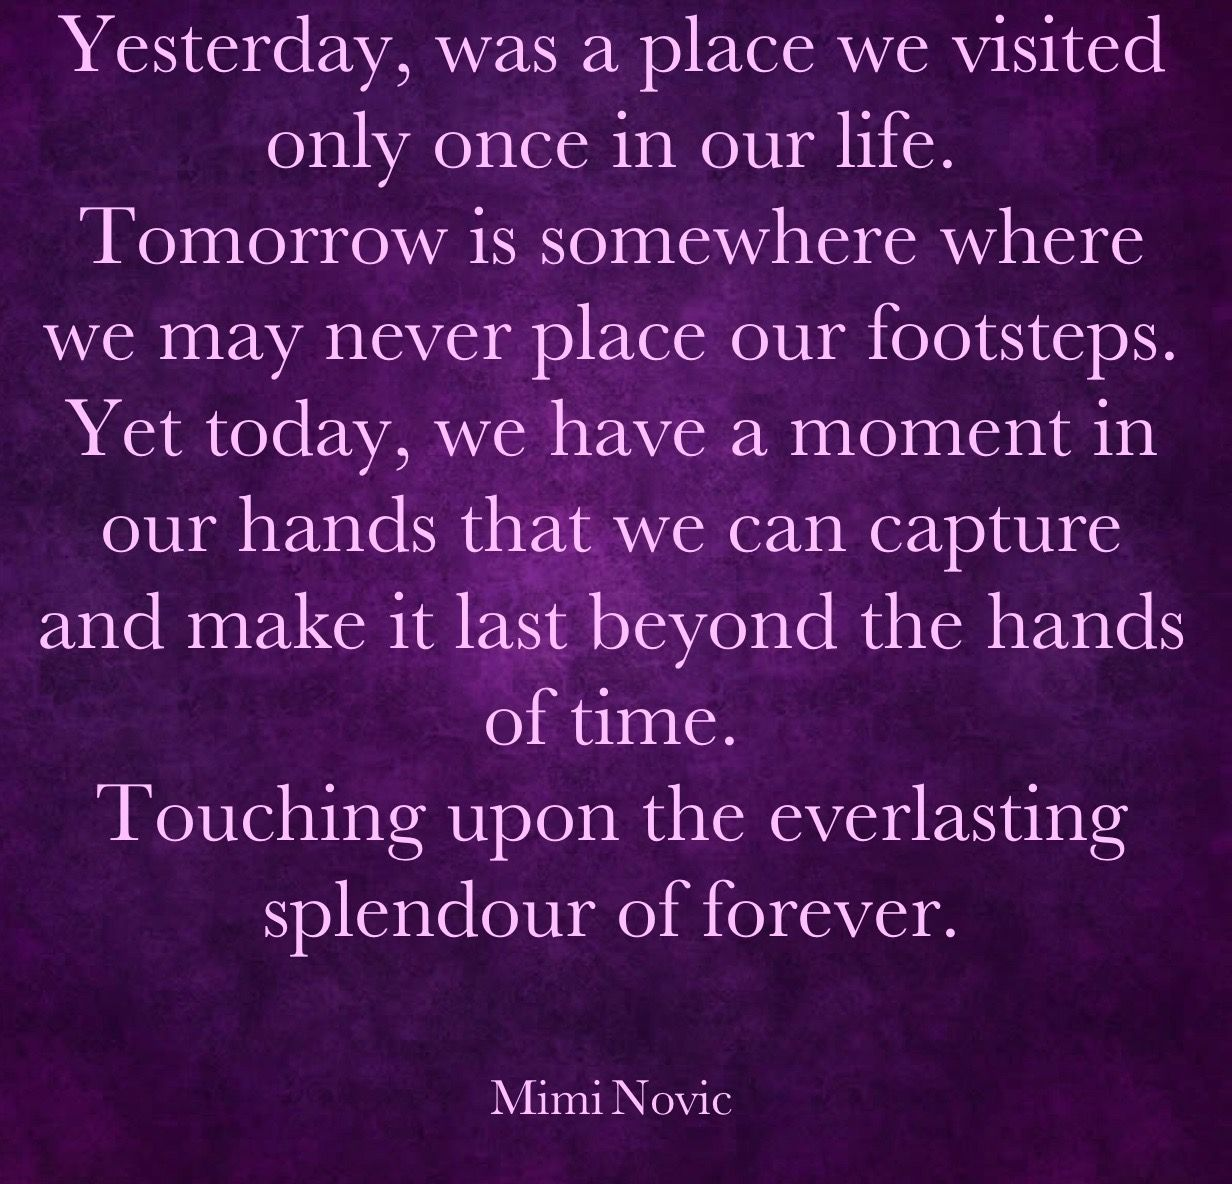 Healing Love Quotes Spiritual Quotesmimi Novic Eternity Forever Yesterday Hope